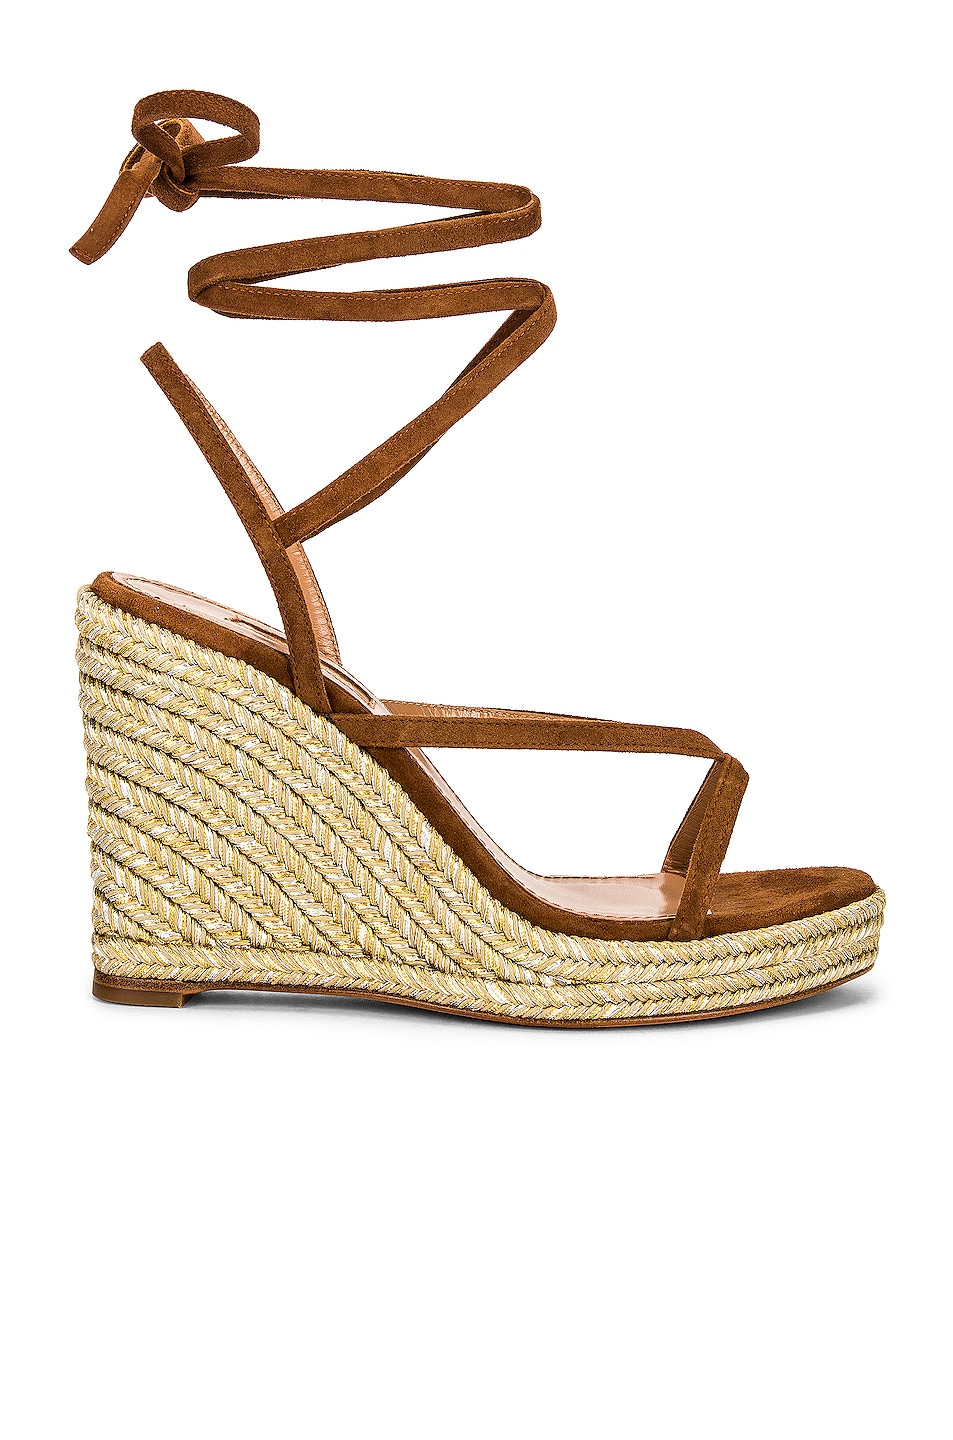 Image 1 of Aquazzura Ramatuelle 85 Wedge Espadrille in Cinnamon